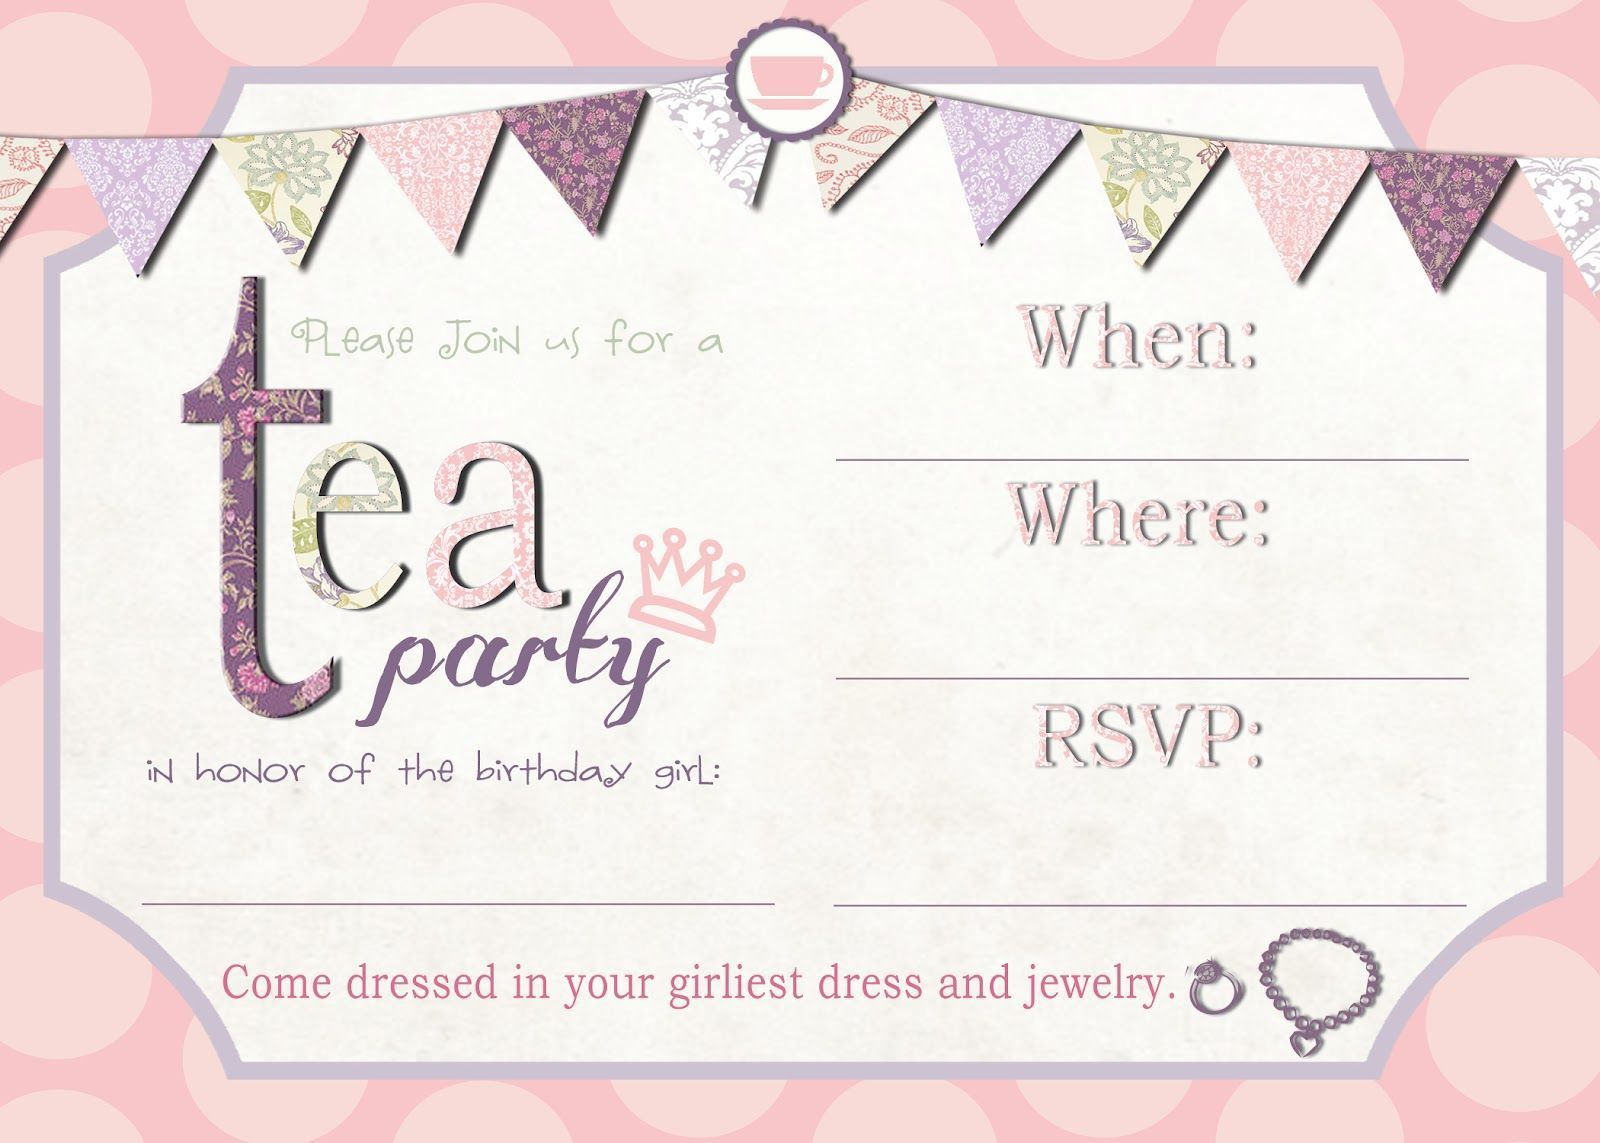 001 Awful Tea Party Invitation Template High Definition  Card Victorian Wording For Bridal ShowerFull